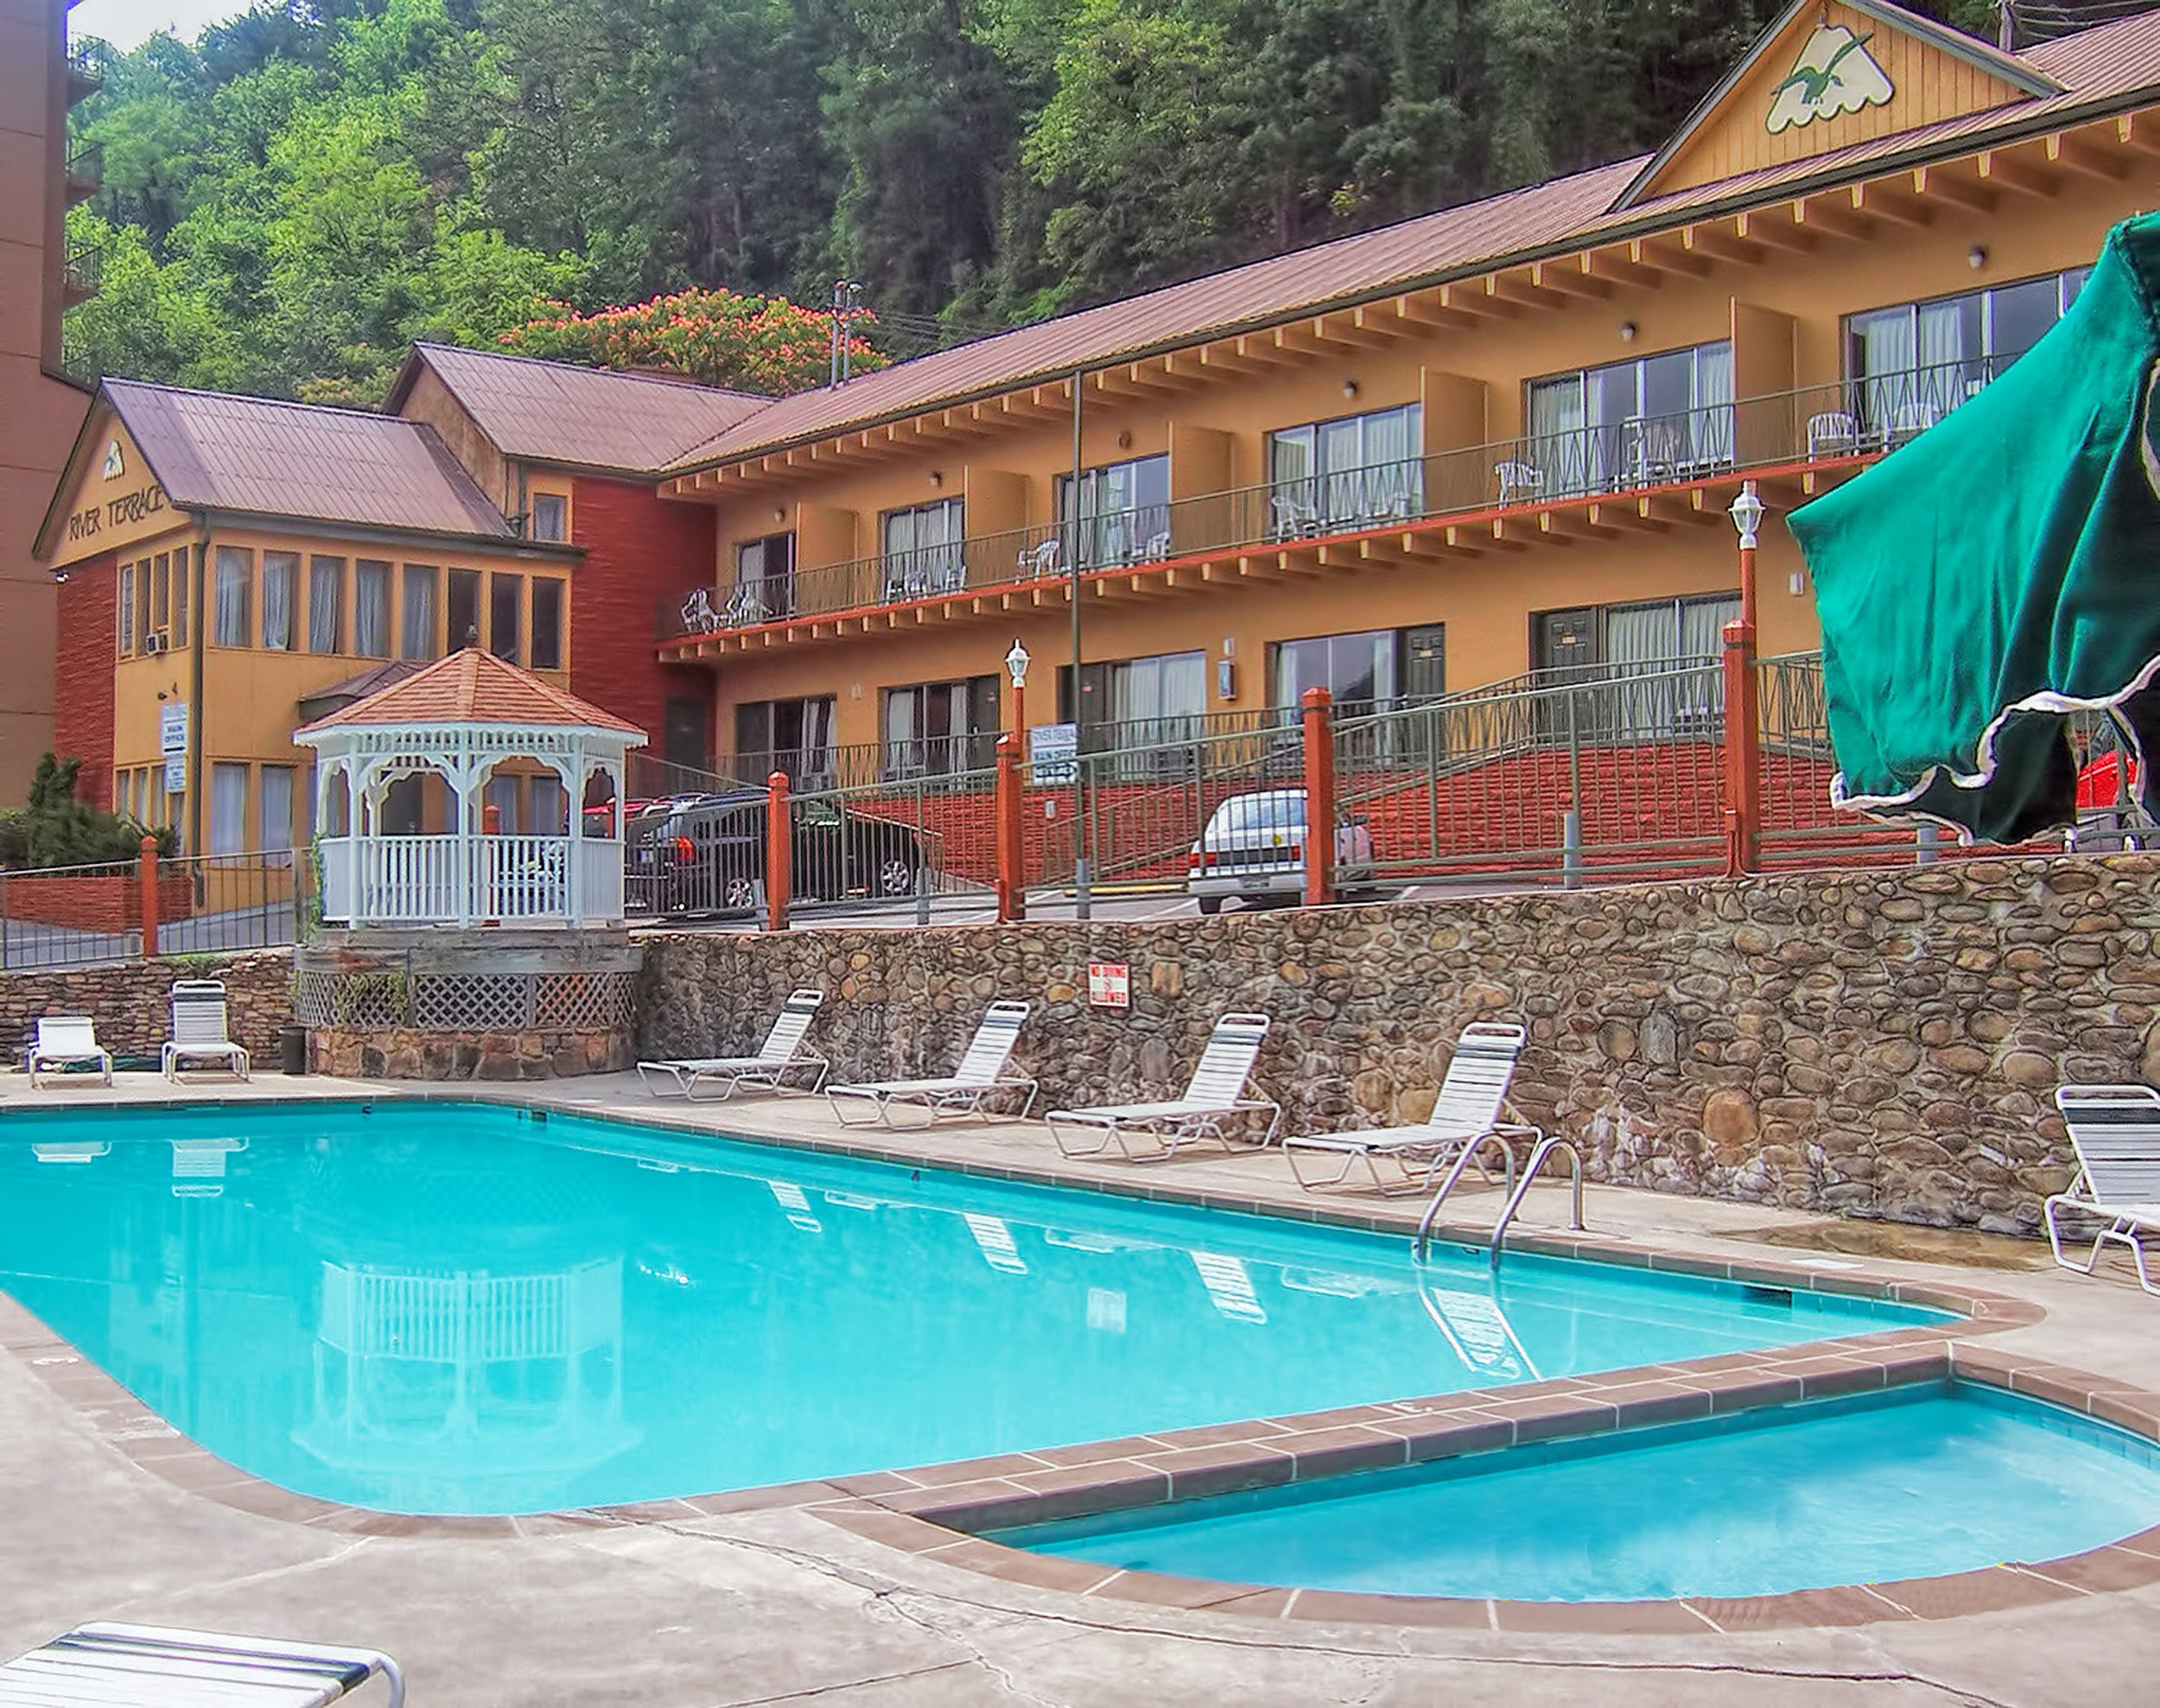 Heated outdoor pool with lounge chairs and gazebo | River Terrace Resort & Convention Center